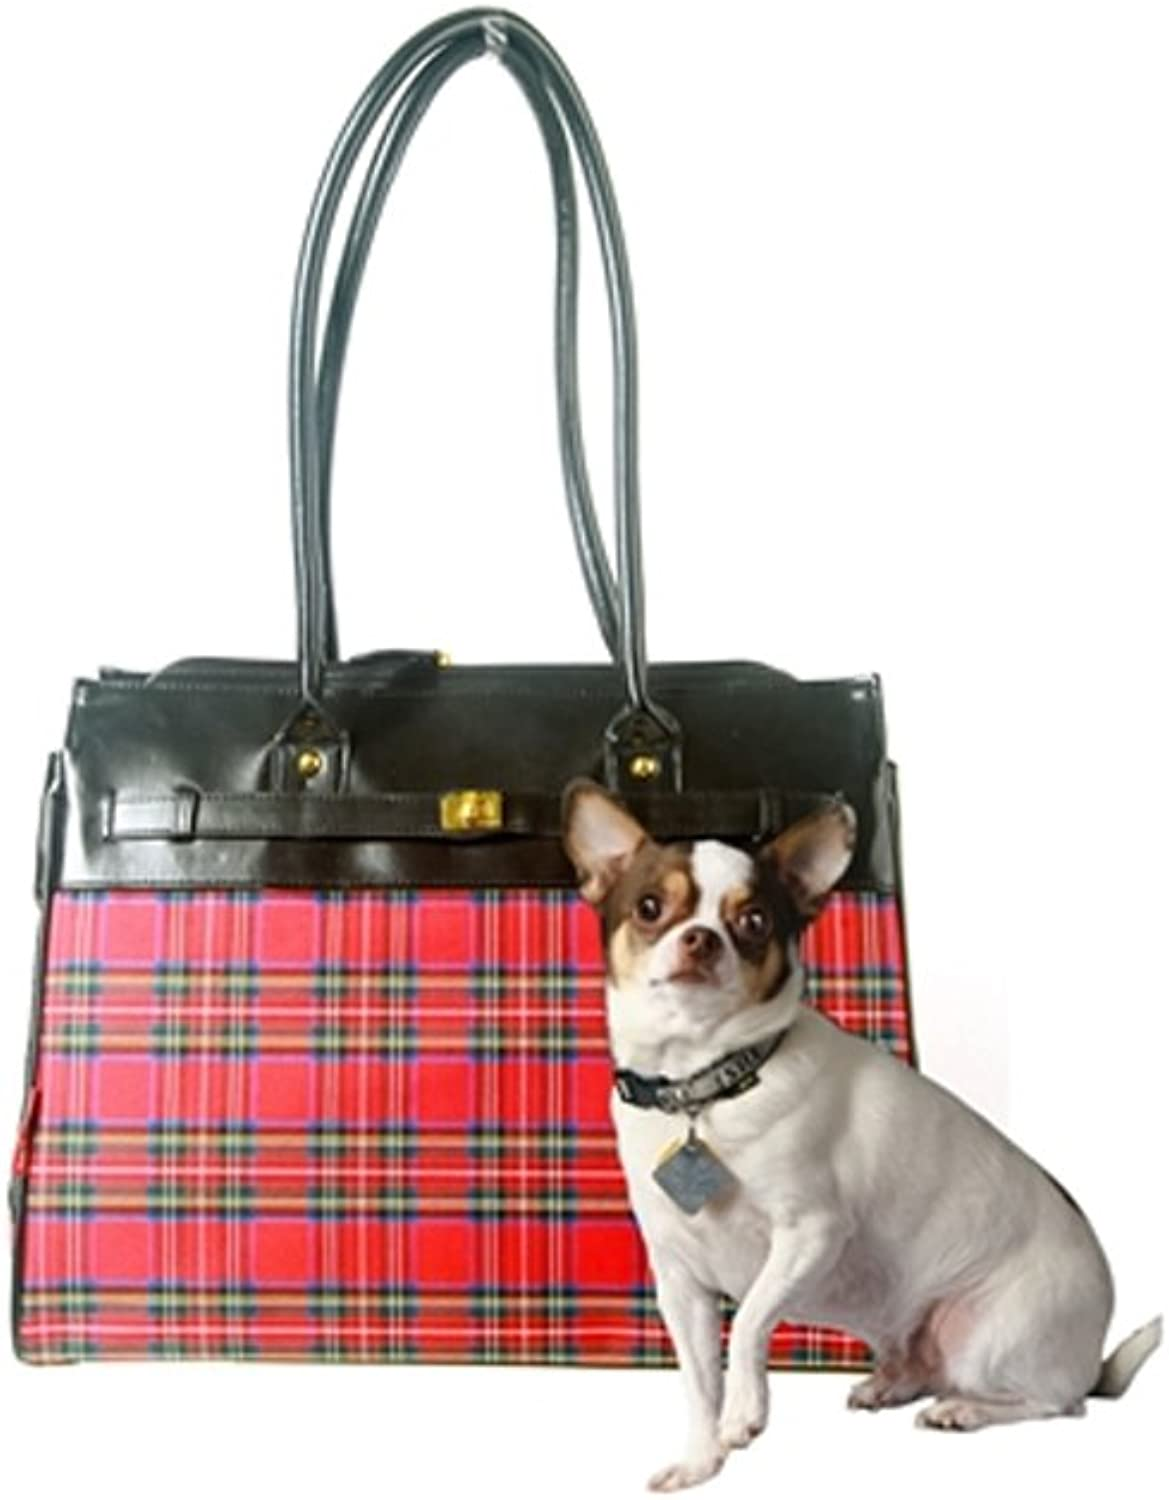 BarknBag 16  x 12.5  x 8  Tartan Collection Monaco Tote Pet Carrier, Small